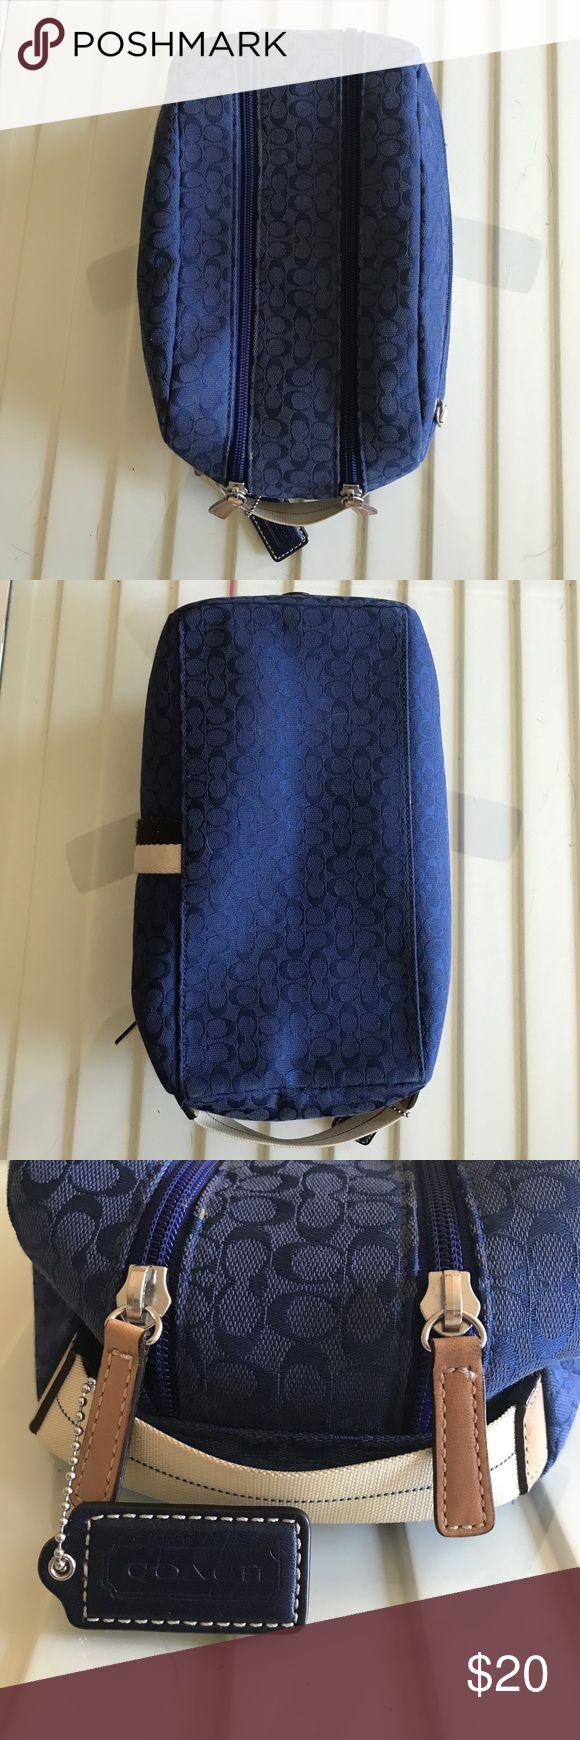 Authentic Coach Travel Bag Authentic Blue Coach Travel Bag. Makeup stains inside. Offers welcome. Coach Bags Travel Bags